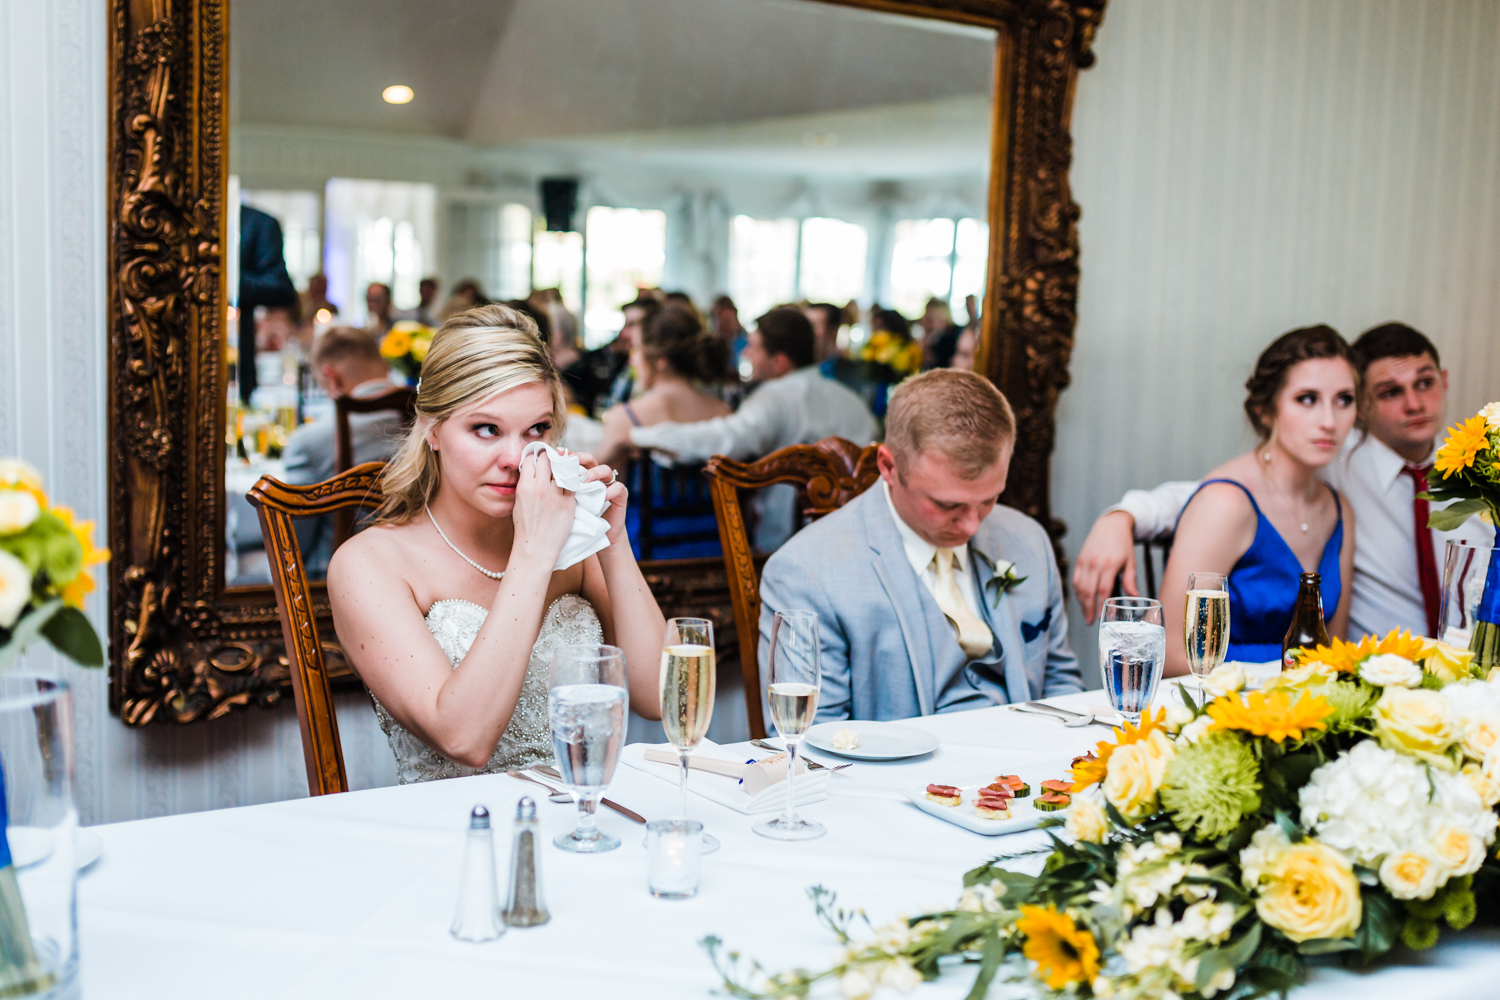 bride gets emotional during toasts at wedding reception - top rated wedding venues in Maryland